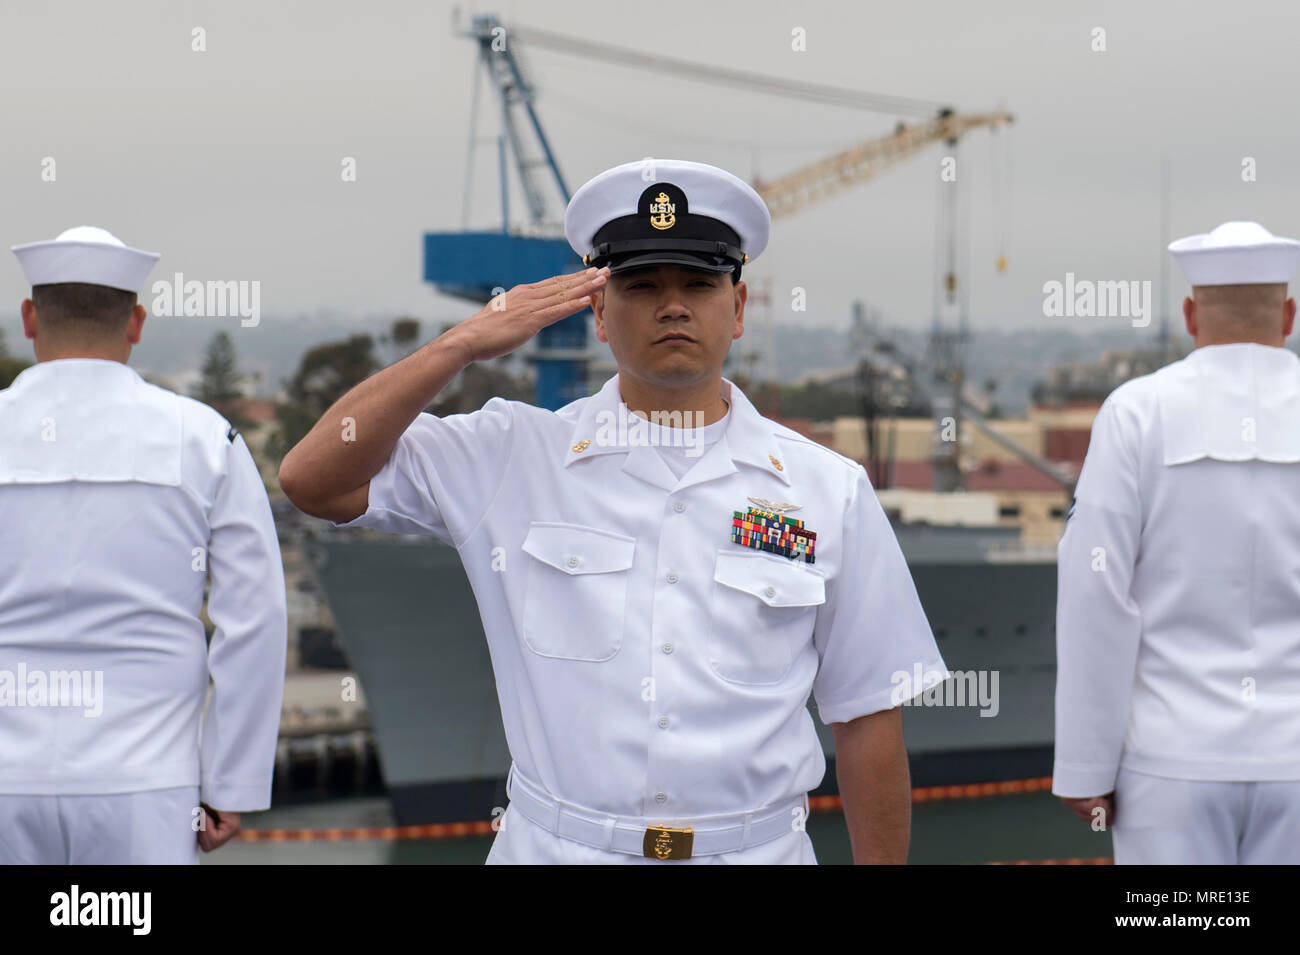 SAN DIEGO (June 5, 2017)  Chief Aviation Machinist's Mate Rodrigo Zurita renders honors to the USS Midway (CV 41) Aircraft Carrier Museum as the aircraft carrier USS Nimitz (CVN 68) passes on the 75th anniversary of the Battle of Midway, June 5, 2017, in San Diego. Nimitz is joining Carrier Air Wing 11, Destroyer Squadron 9 and the rest of Carrier Strike Group 11 to depart on a regularly scheduled deployment. (U.S. Navy photo by Mass Communication Specialist 2nd Class Elesia K. Patten) - Stock Image